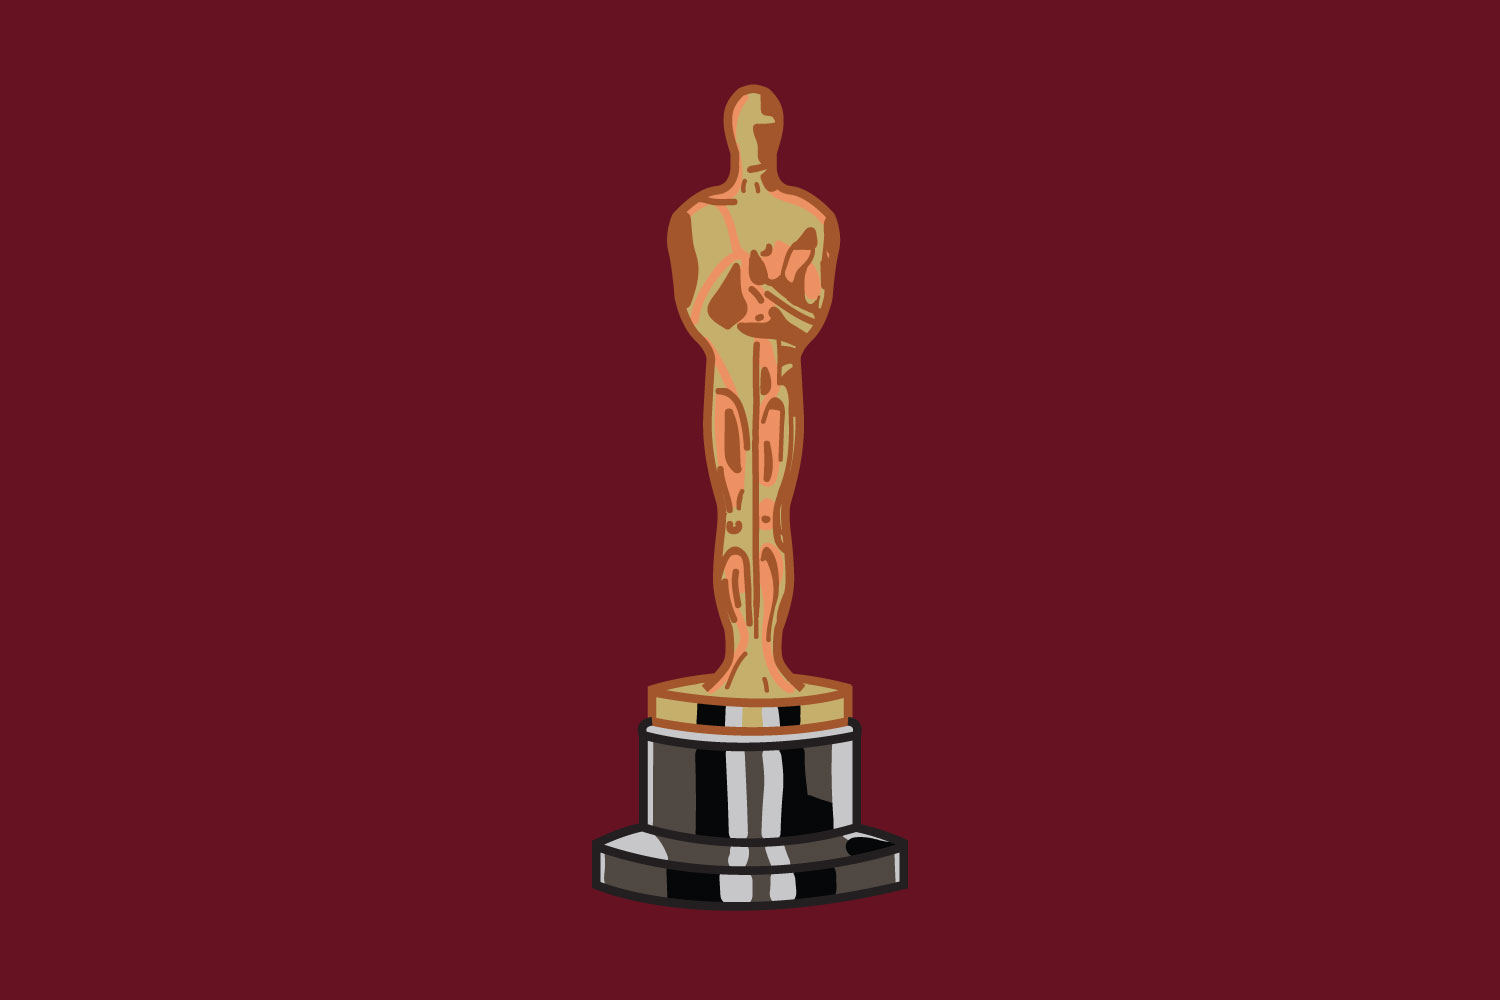 Since its introduction in 1929, the Oscar statue has become a symbol for cinematic excellence. Though not all of these films won the coveted gold figure, all are worth a watch and are readily available on Netflix.